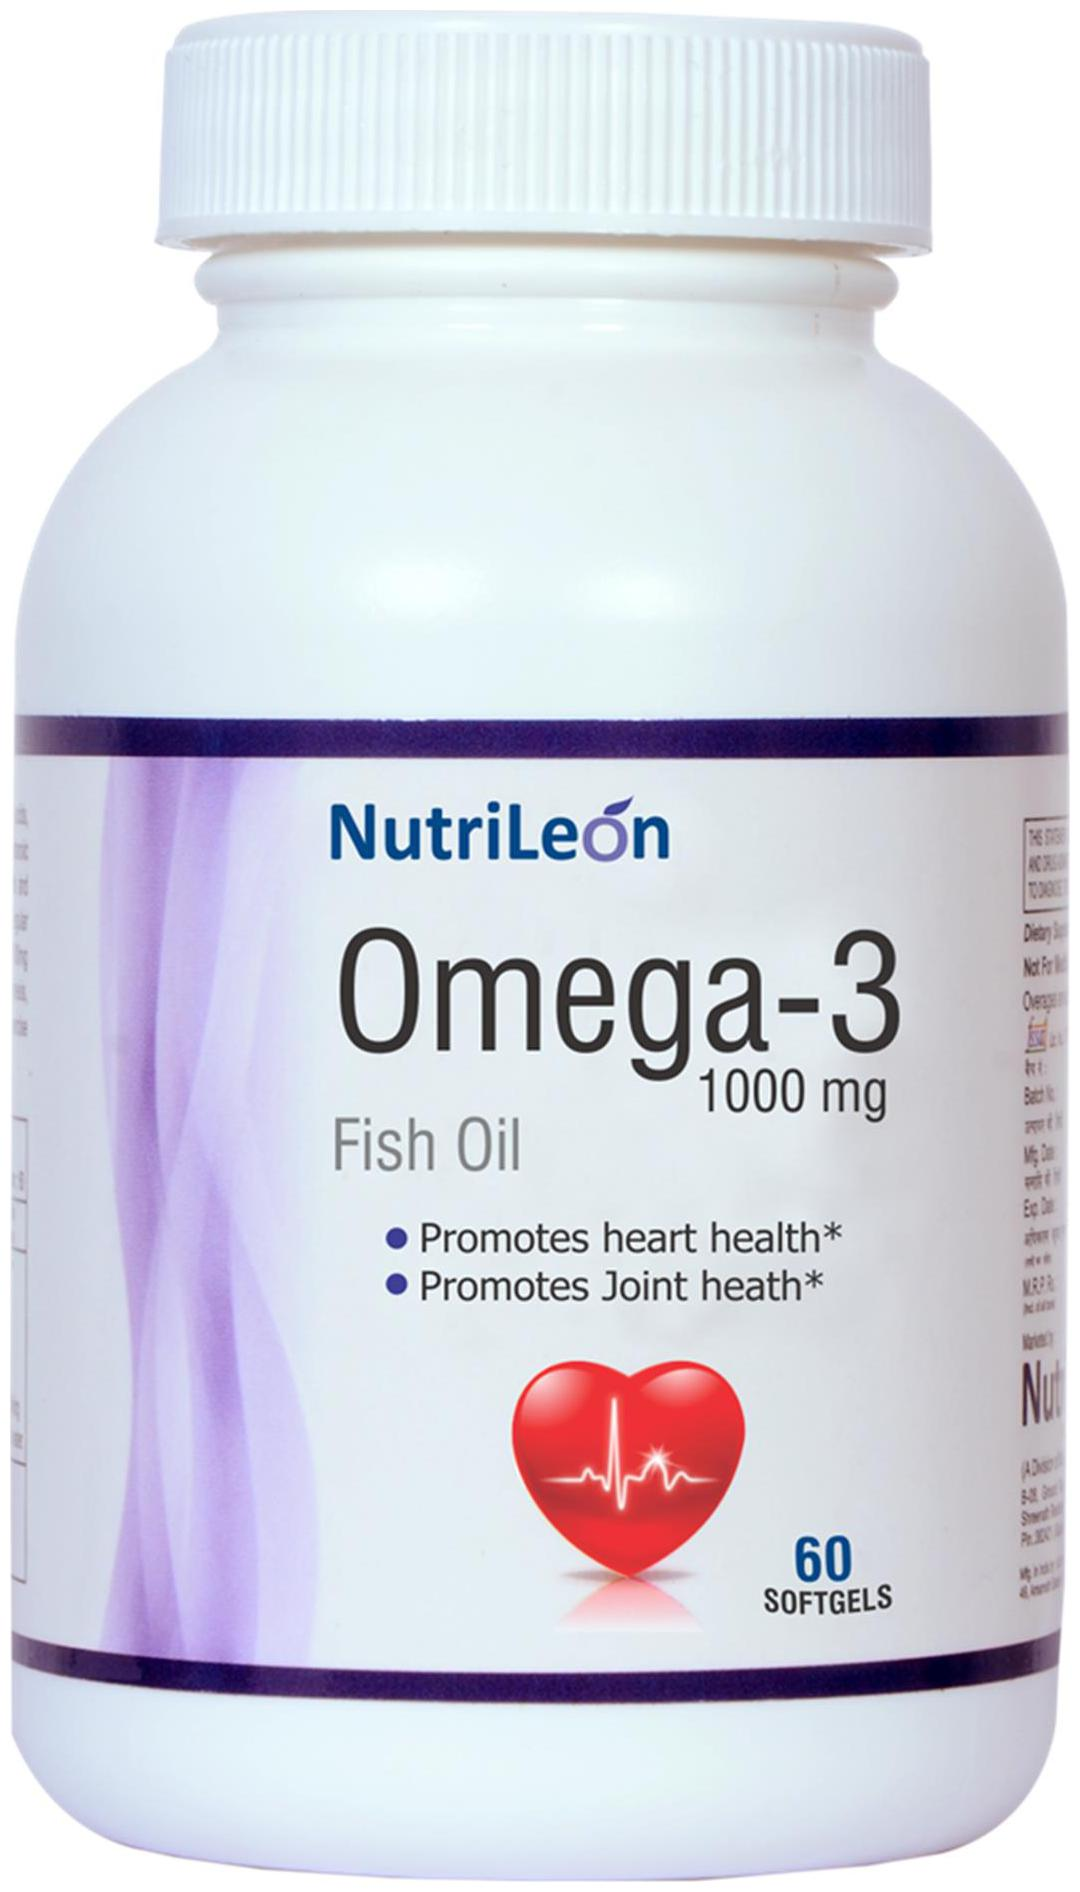 NutriLeon Omega 3 Fish Oil 1000mg 60 capsules